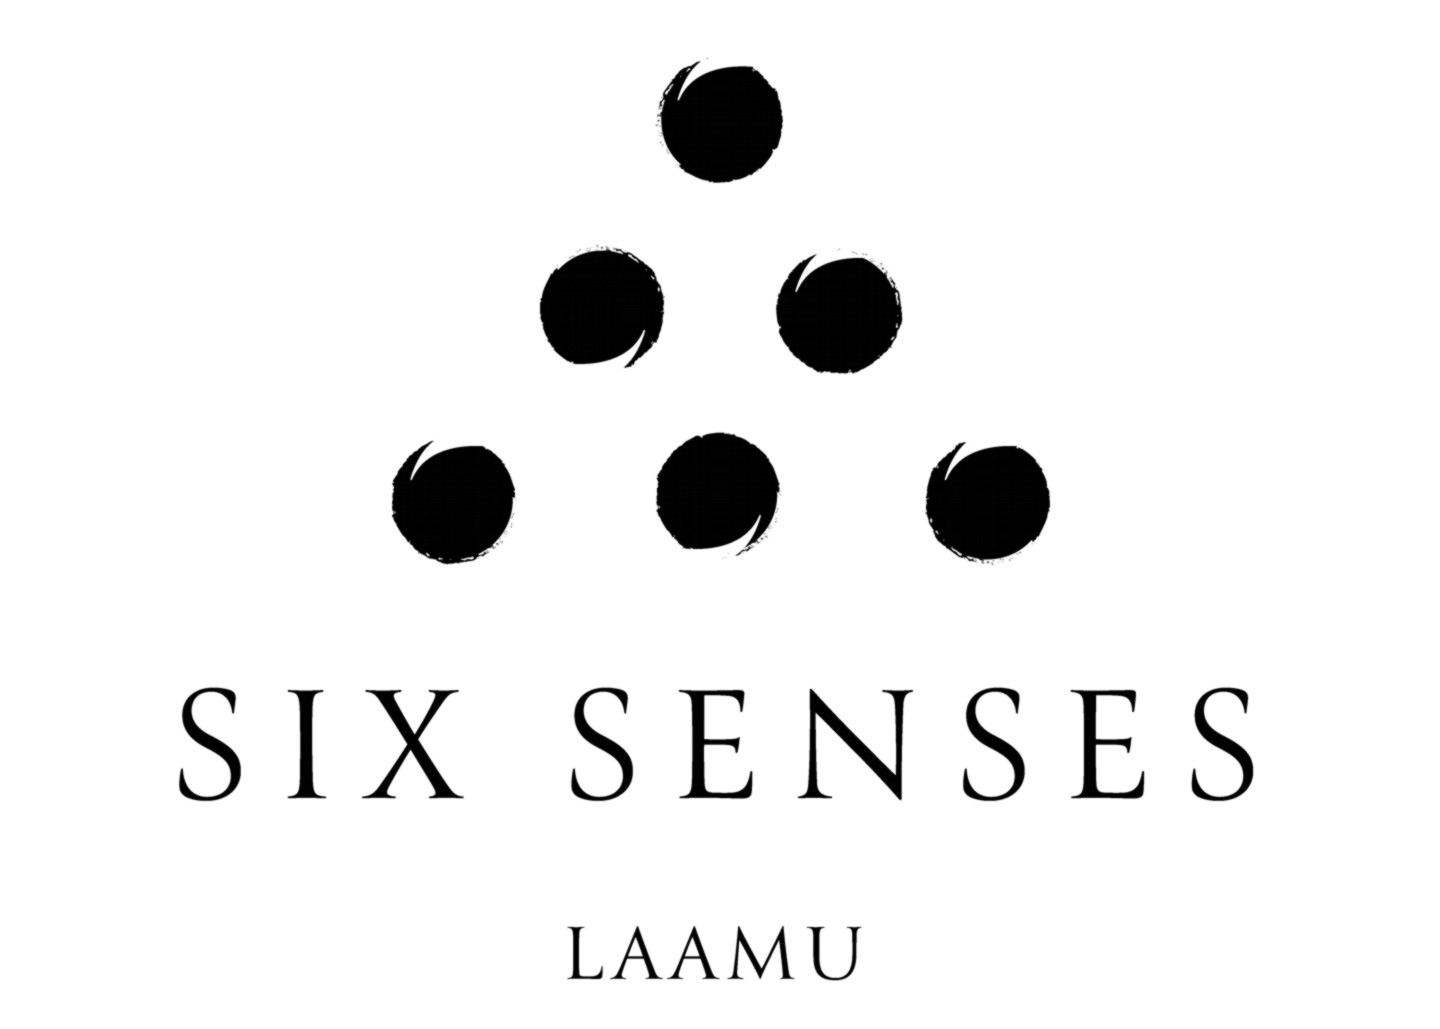 JPG BKG- New B&W Logo - Six Senses Hotels Spas_Low res.jpg